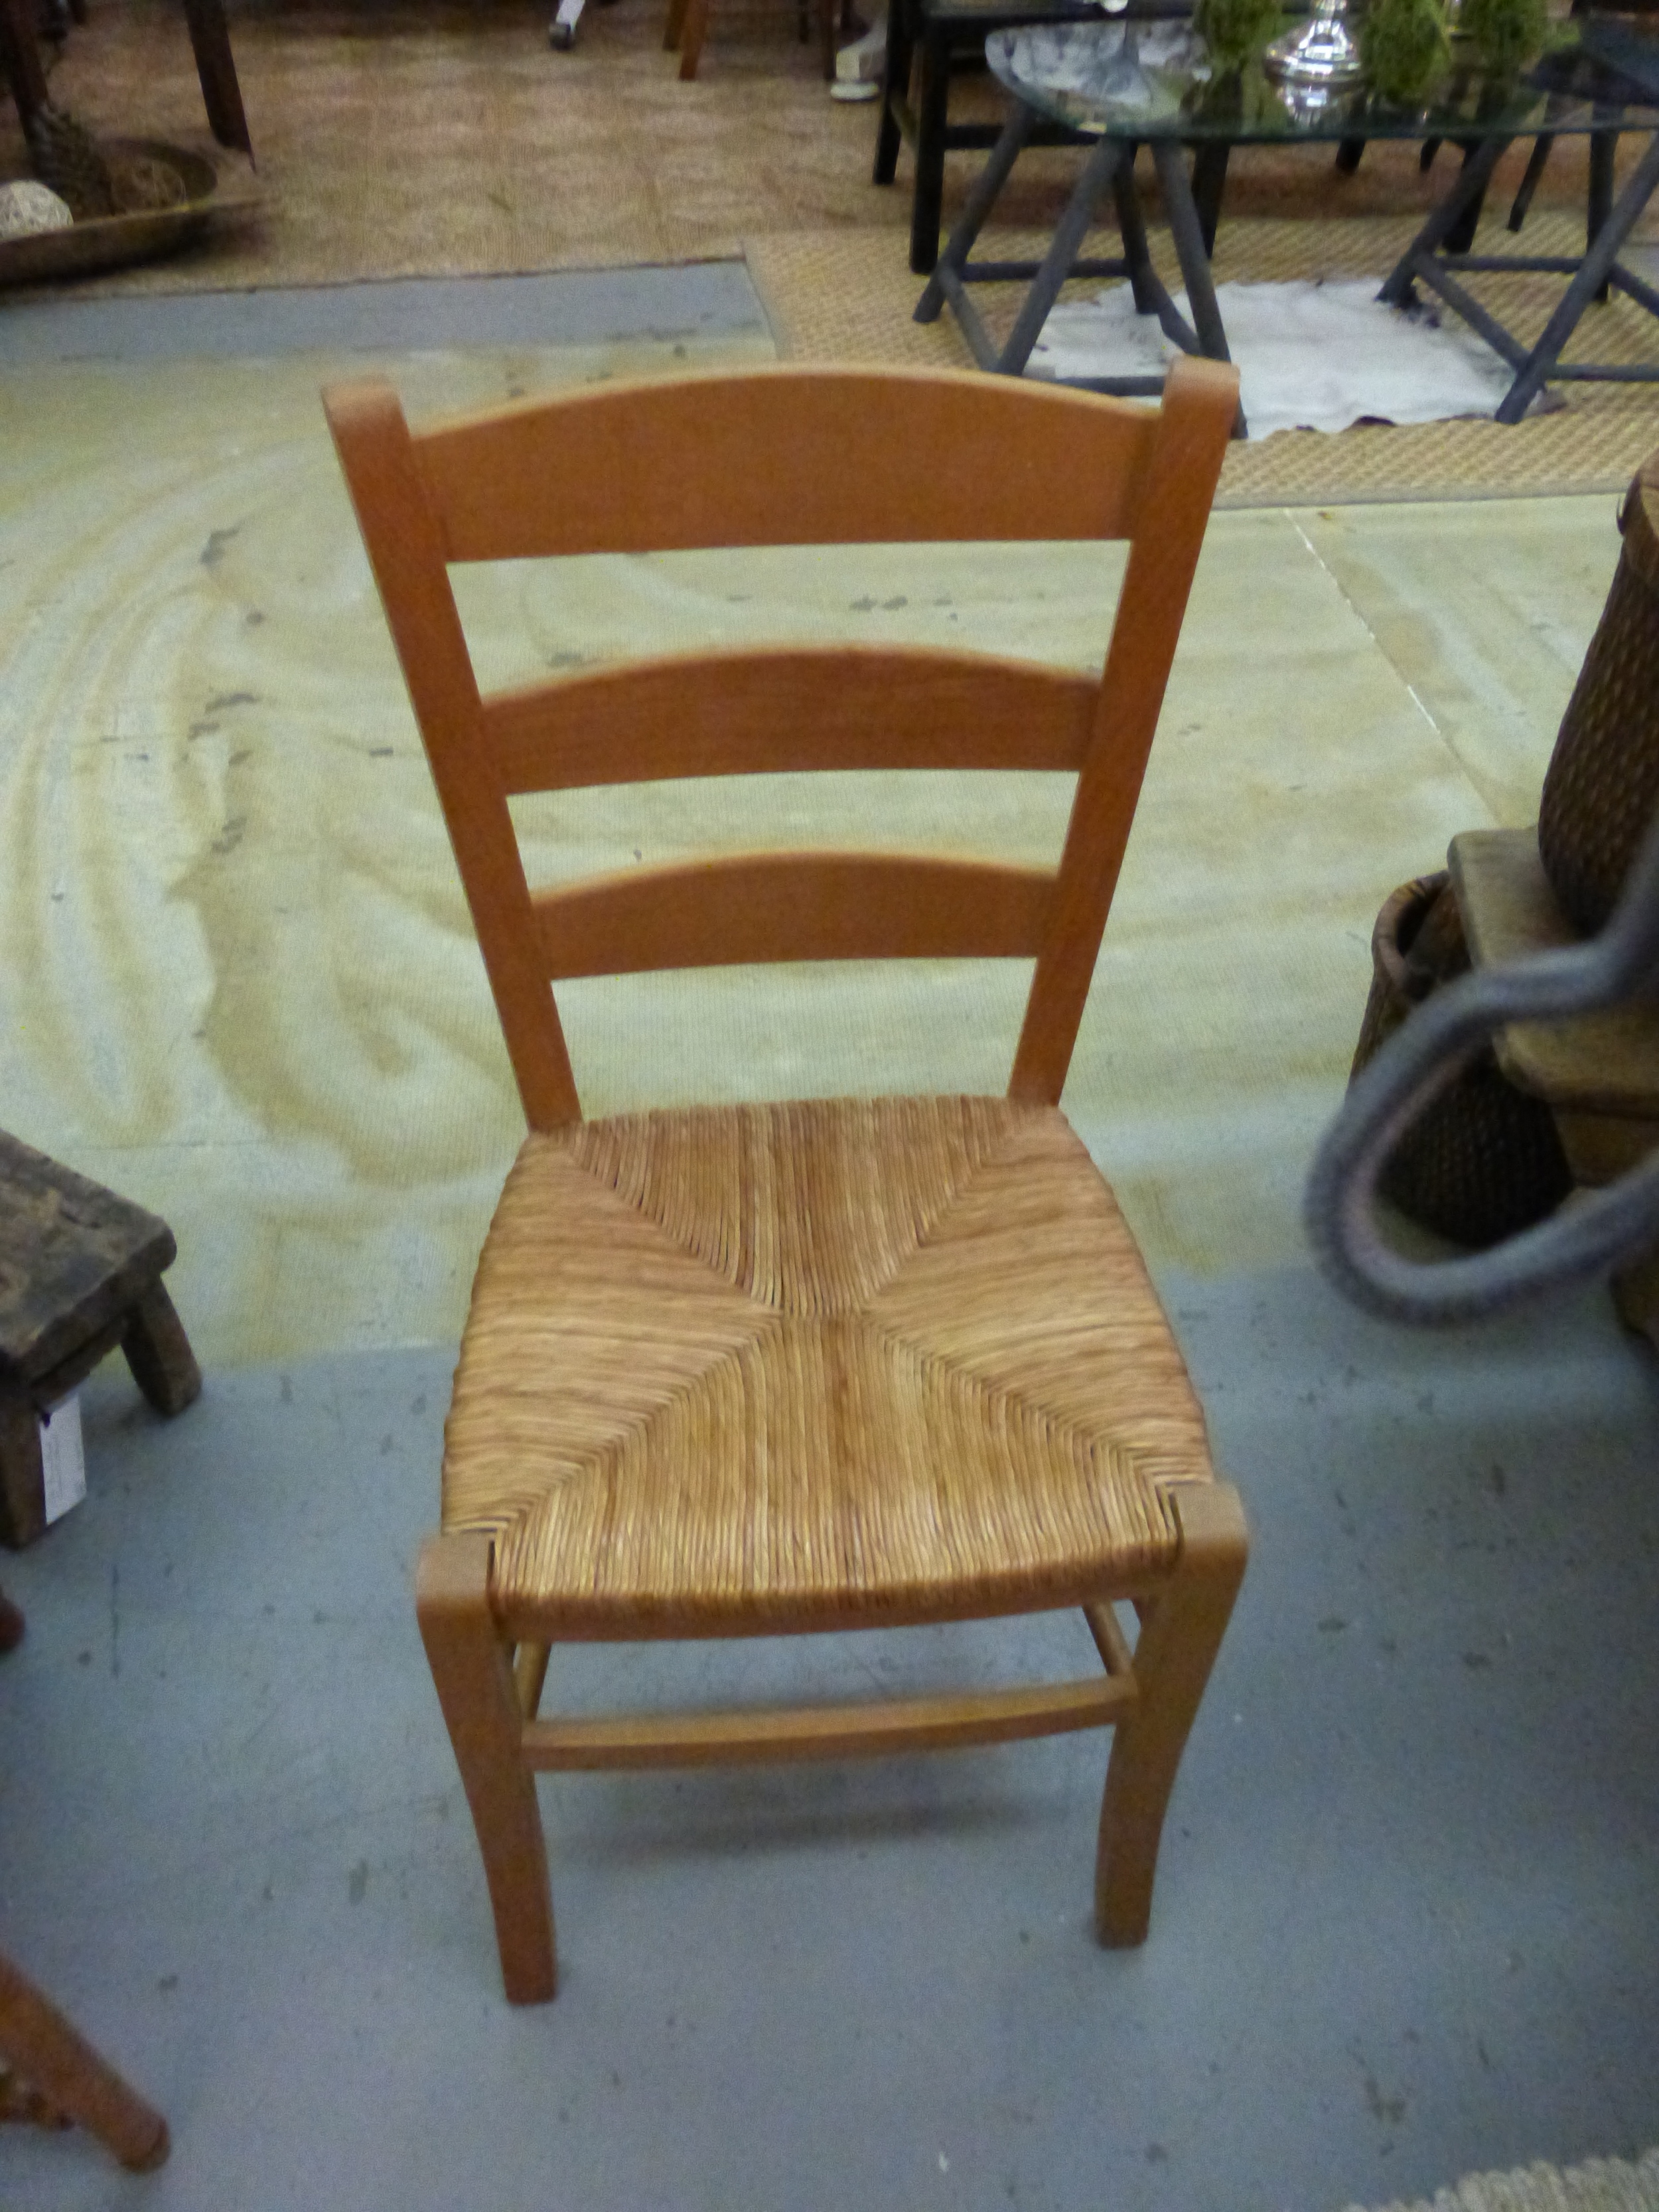 Small rush seat chair is in set of four.